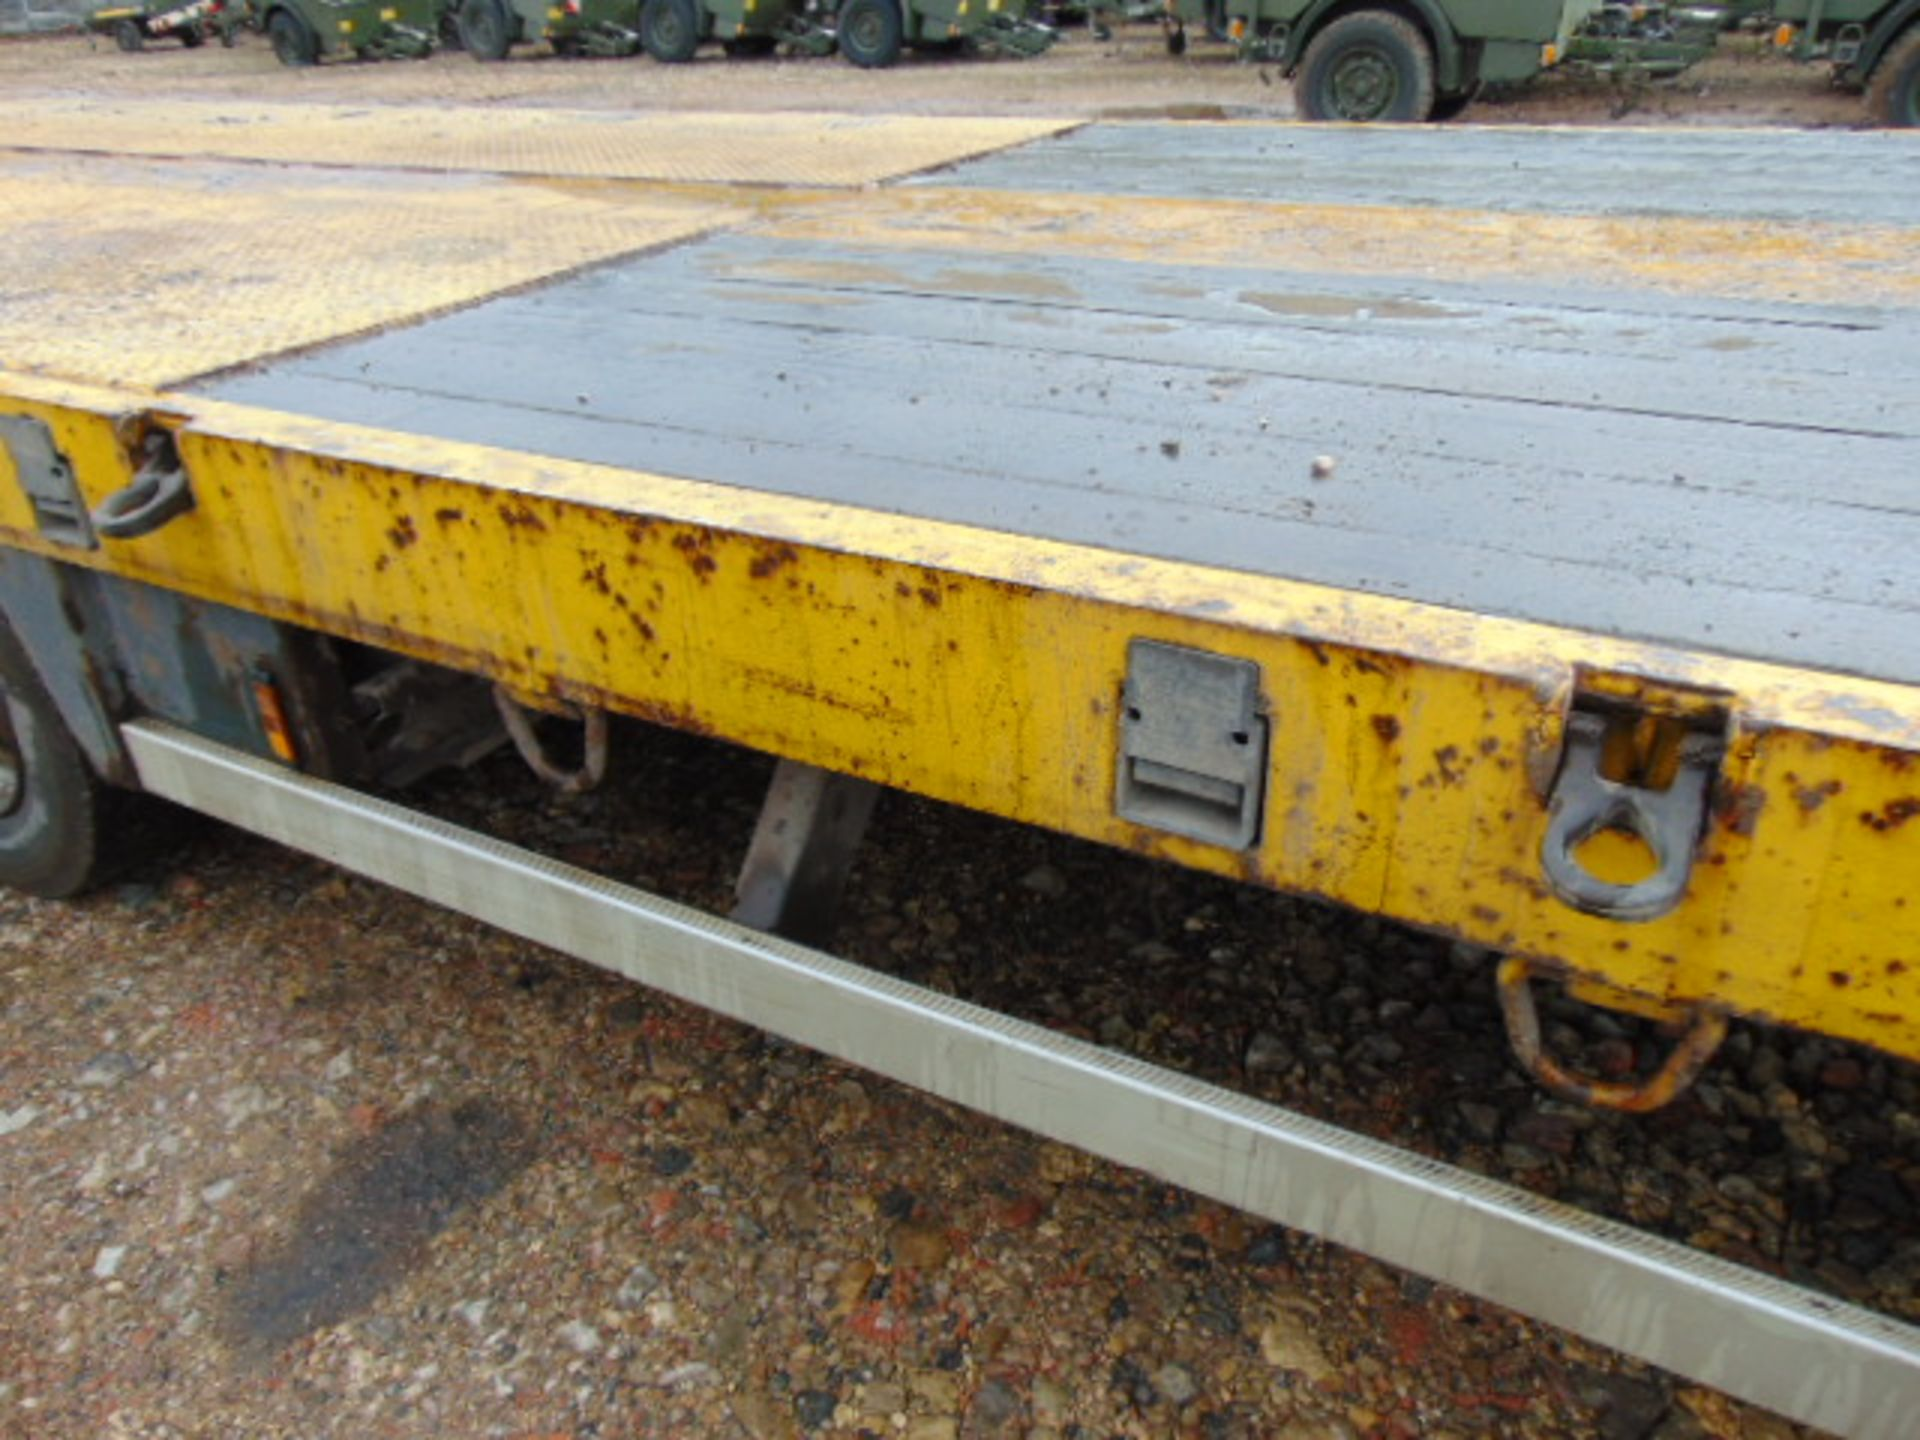 Lot 22 - 2010 Nooteboom OSDS 48-03 Tri Axle Low Loader Trailer